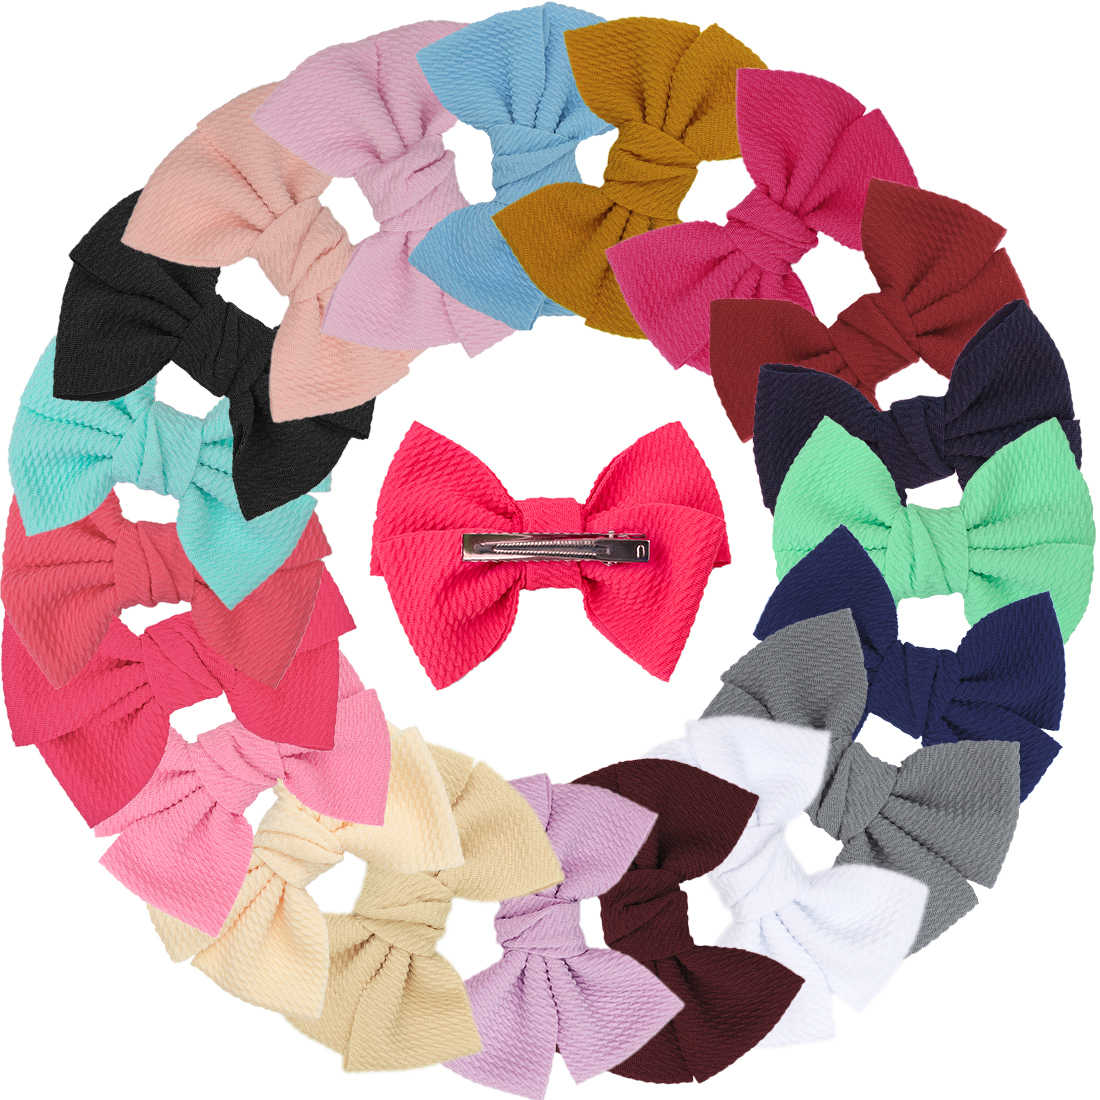 20pcs/set Girls Big Bows Velvet Hairbow 5.5 Inch Bow WITH/WITHOUT Clips Women Sweet Hair Accessories Children Headwear